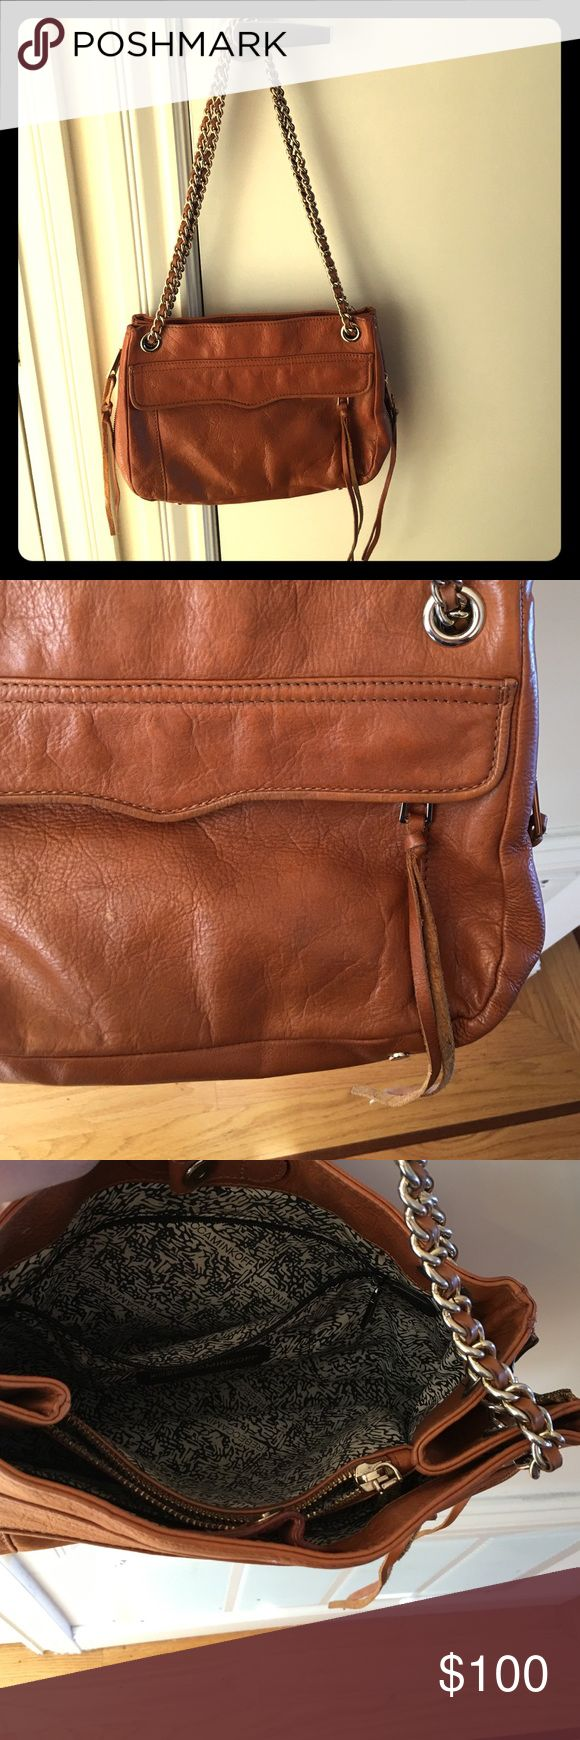 Tan leather Rebecca Minkoff purse Beautiful tan leather Rebecca Minkoff purse! The convertible gold chain can be worn over the shoulder or as a cross-body. Rebecca Minkoff Bags